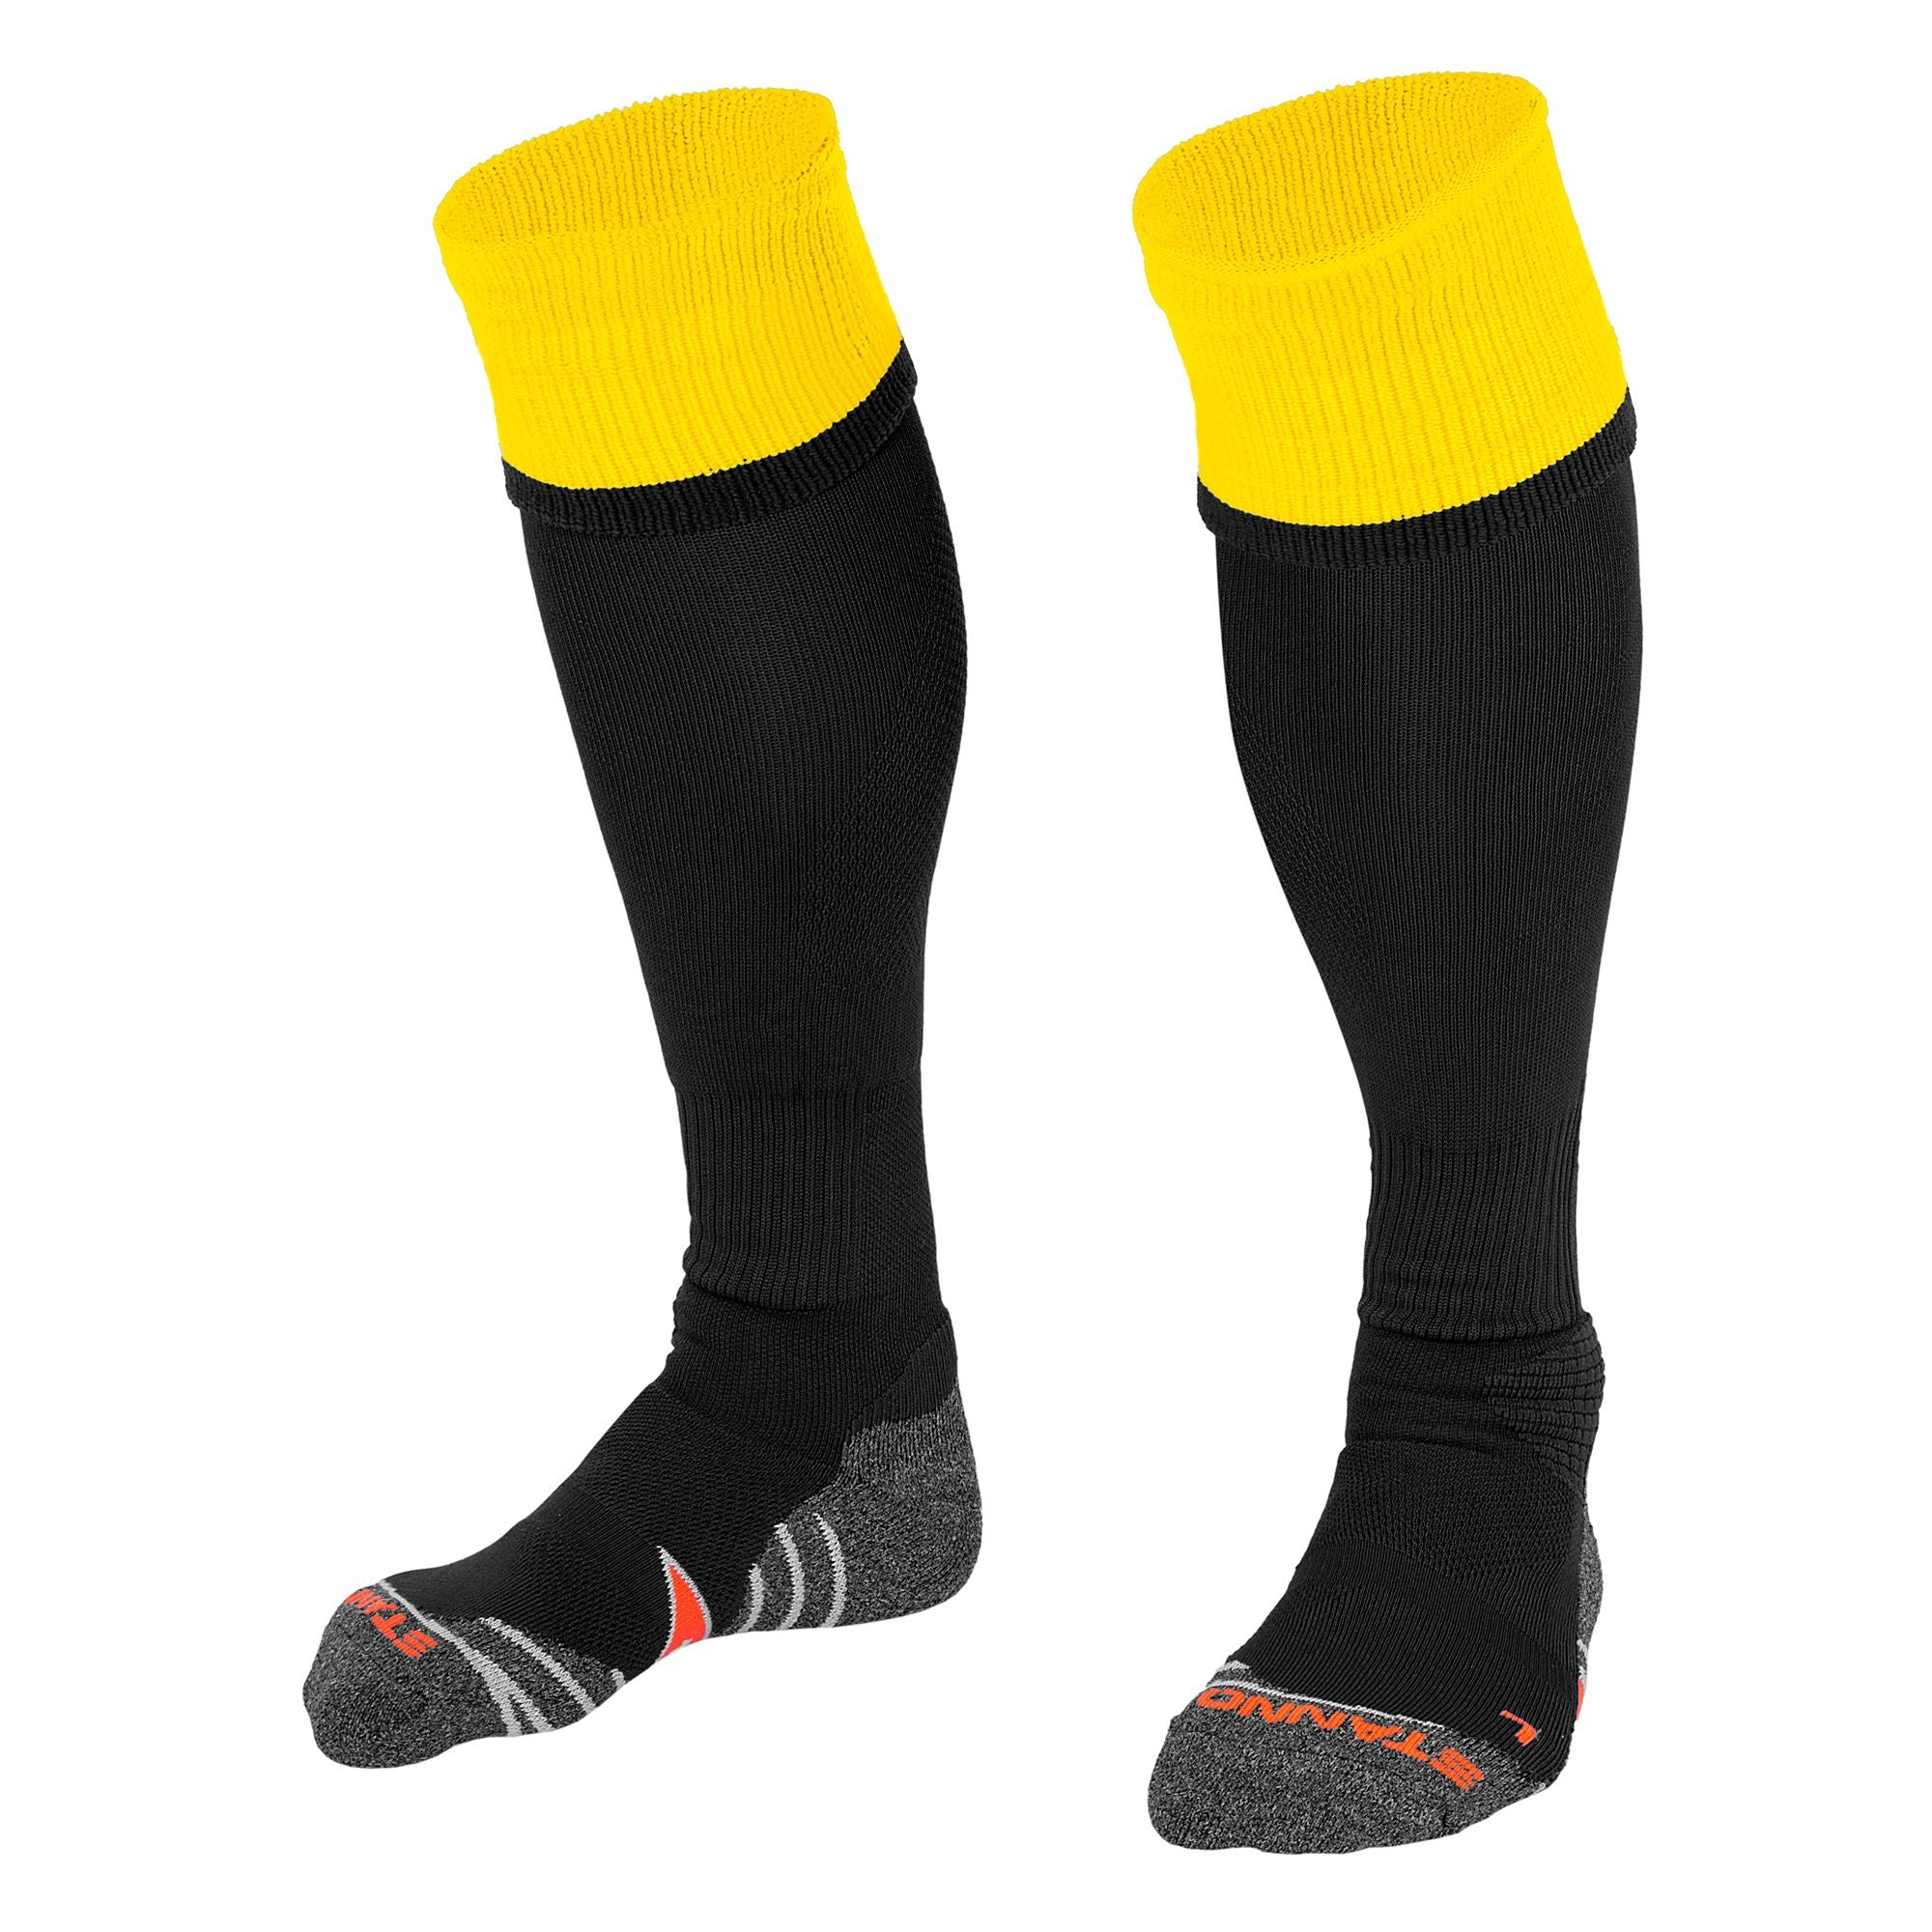 Stanno Combi Sock in black with yellow contrast tops